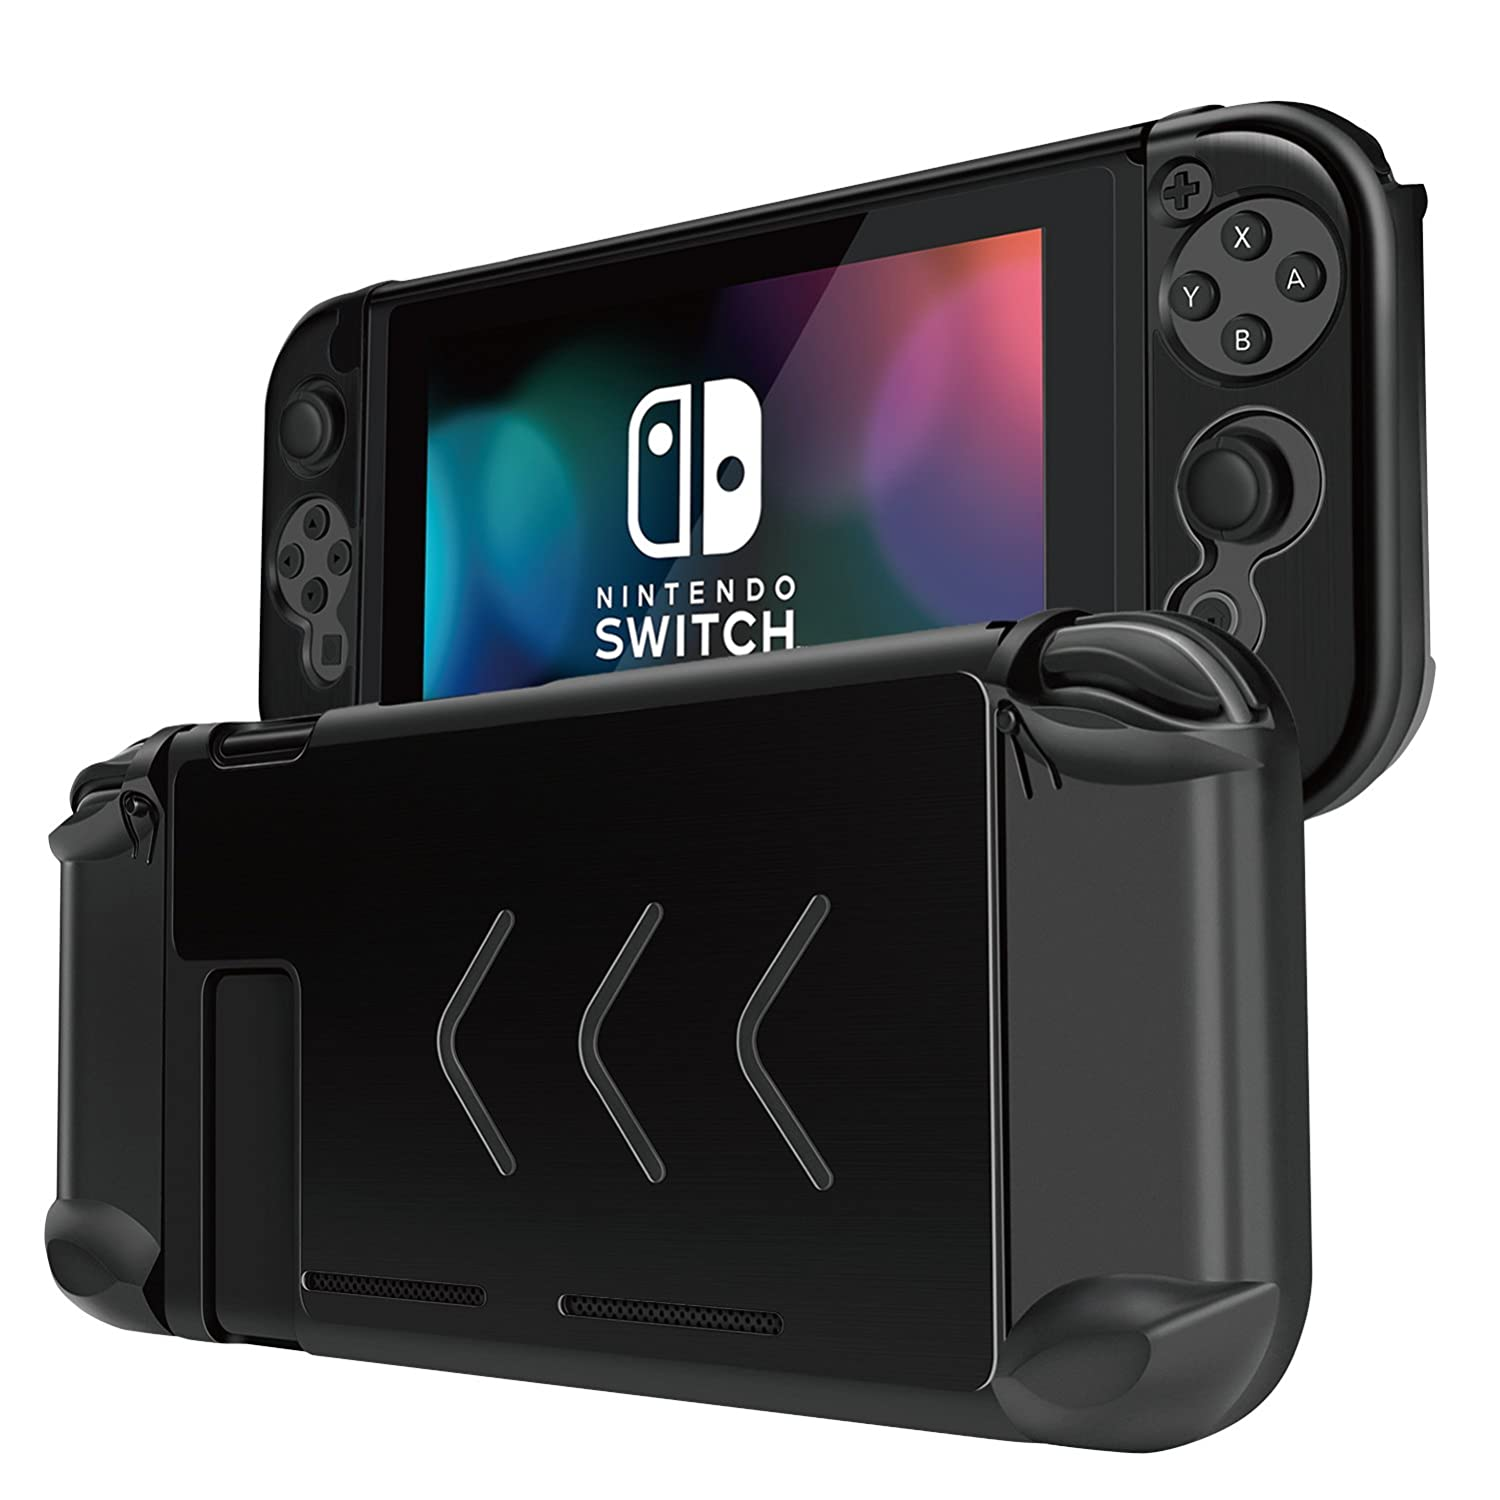 Tnp Case Cover For Nintendo Switch Console & Joy Con Controller   Travel Friendly Aluminum Alloy Hard Shell Protector, Anti Scratch Shockproof Protective Nintendo Switch Accessories (Black) by Tnp Products